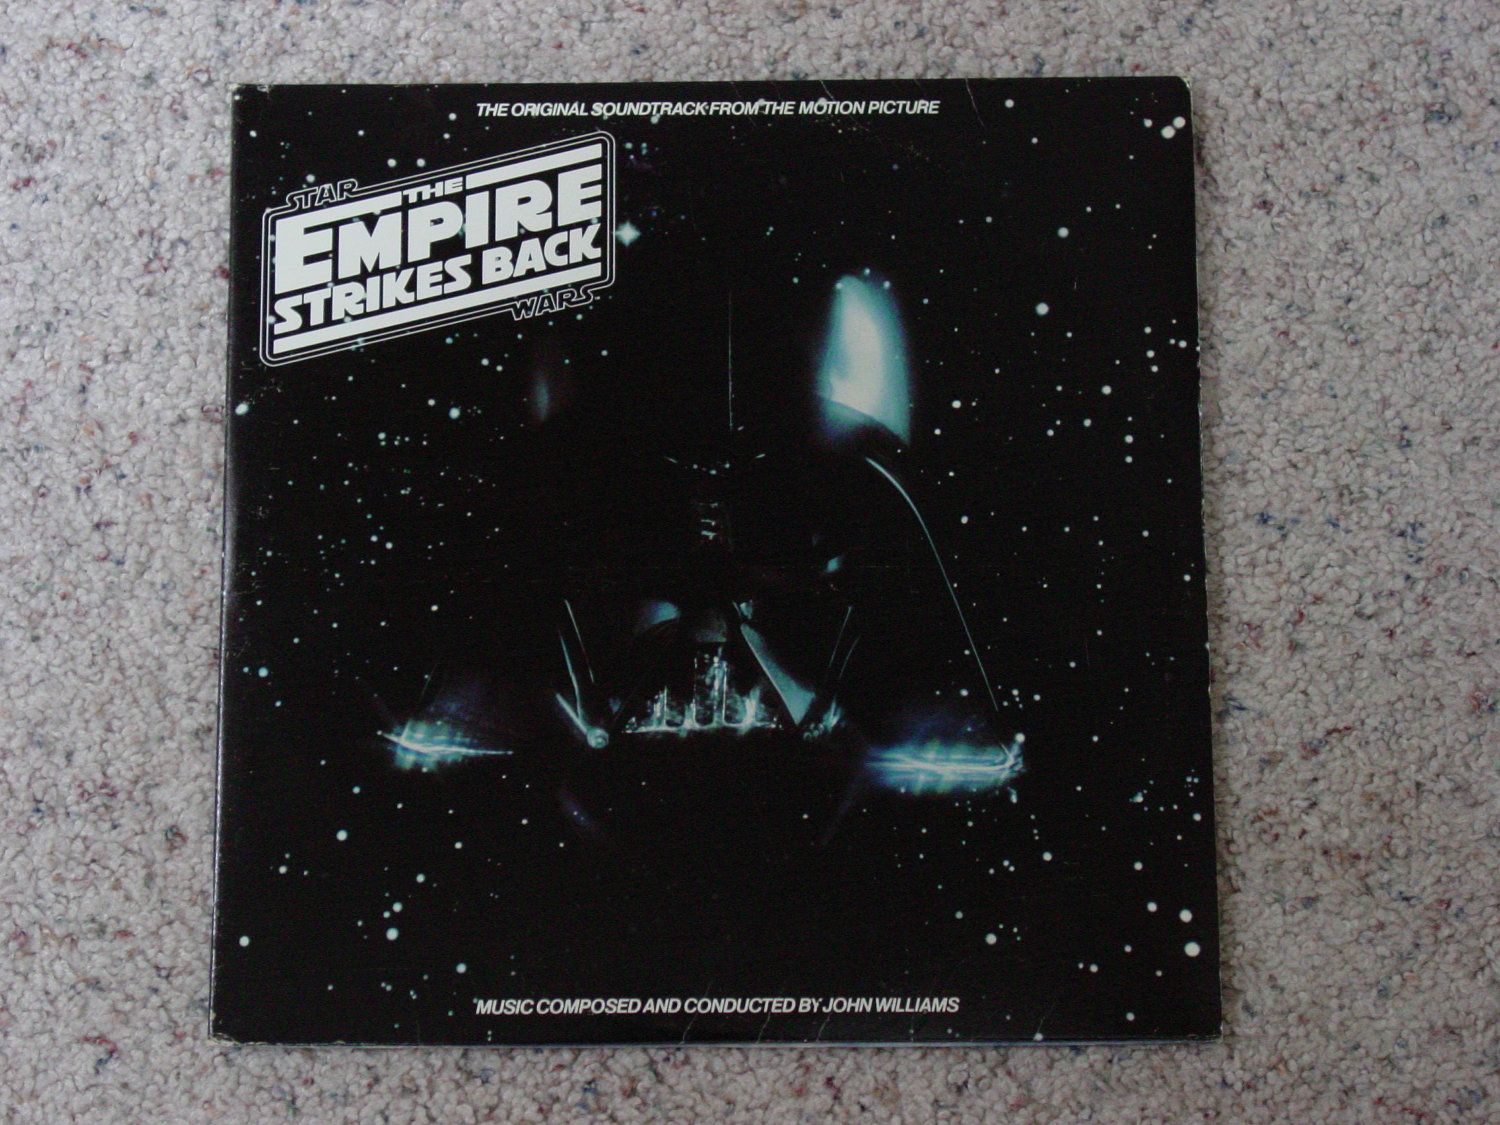 The Empire Strikes Back: Soundtrack from the Motion Picture (Vinyl, 1980)